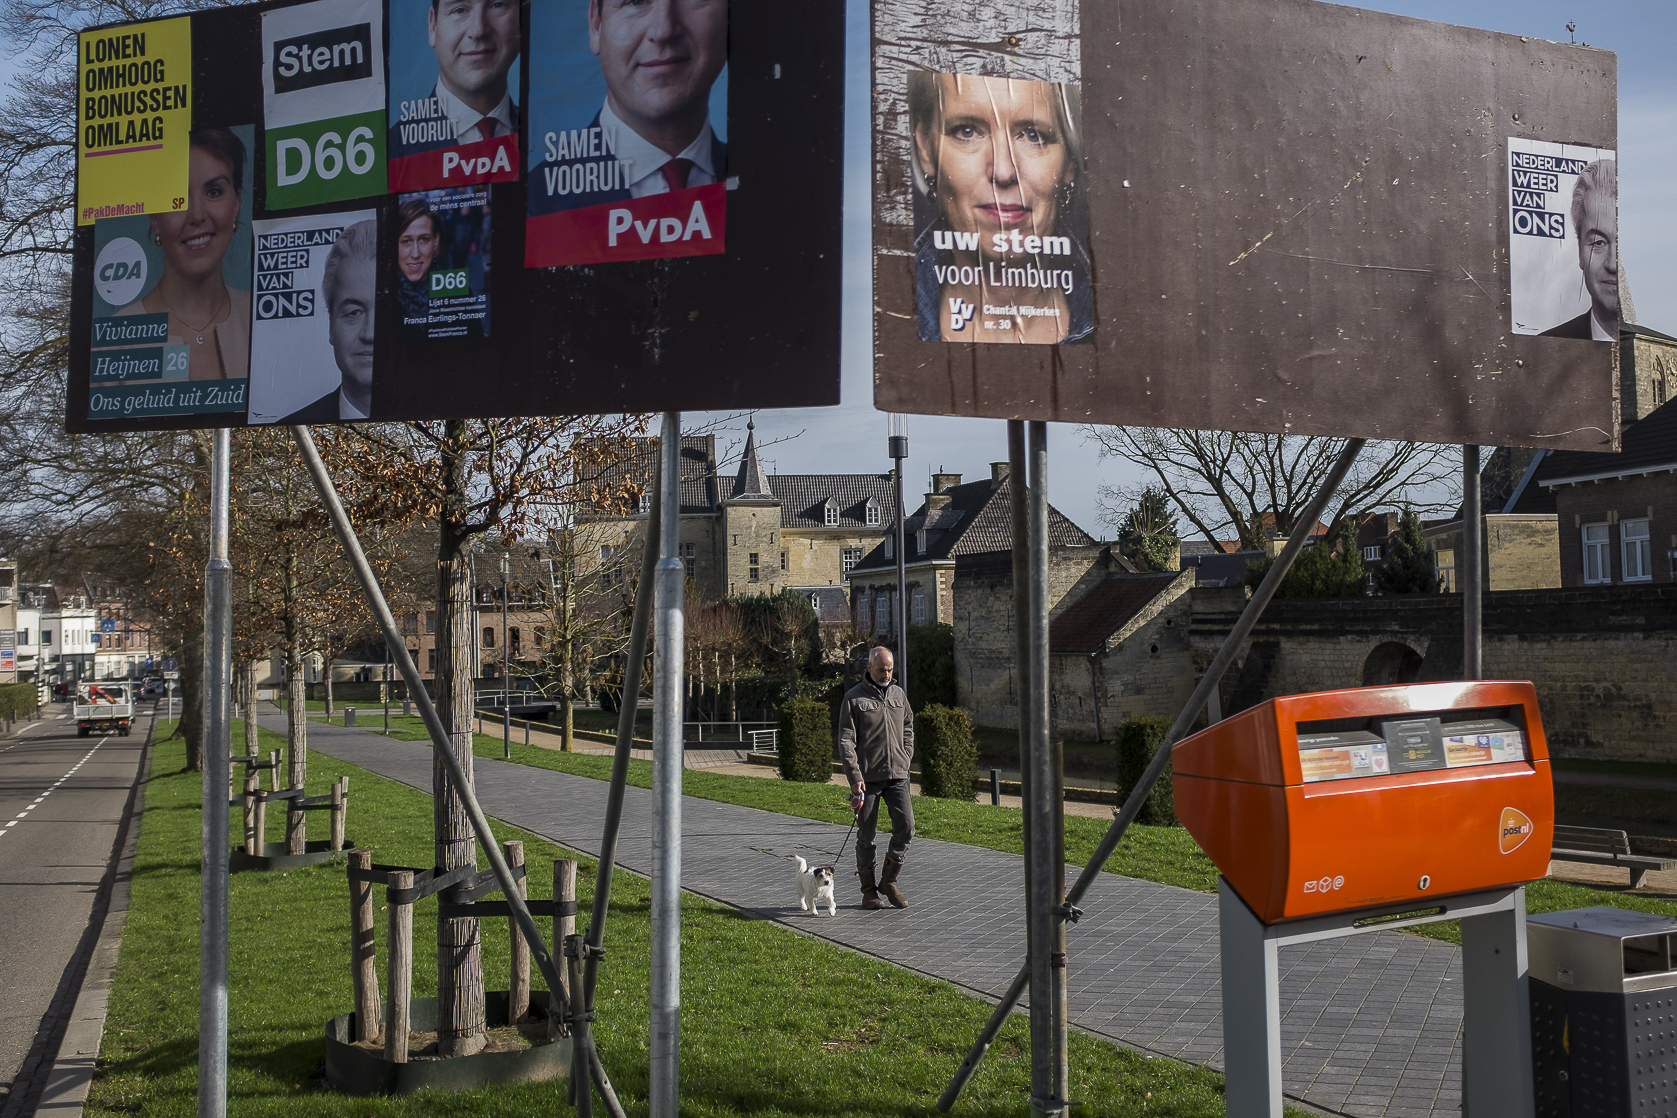 A billboard in Valkenburg, Netherlands, with posters showing the candidates for the Dutch general elections. March 11, 2017.